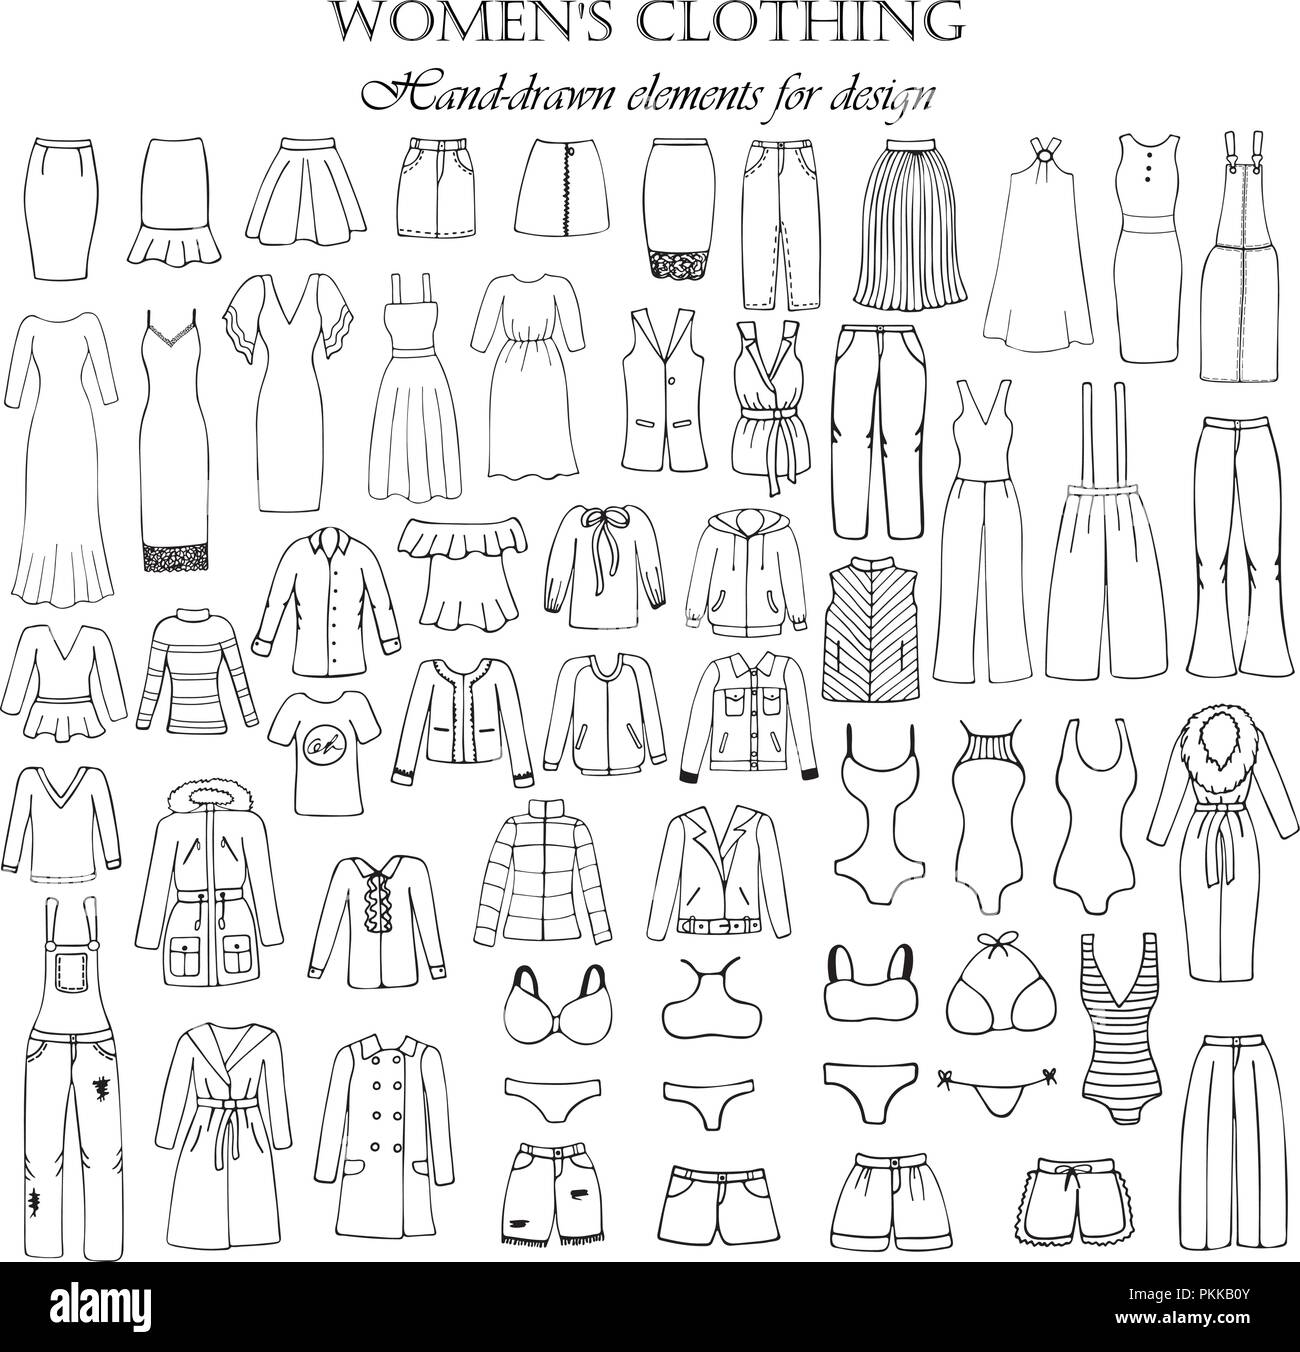 Set of 55 hand-drawn elements of a women's clothing for design. Black-and-white vector illustration. - Stock Vector